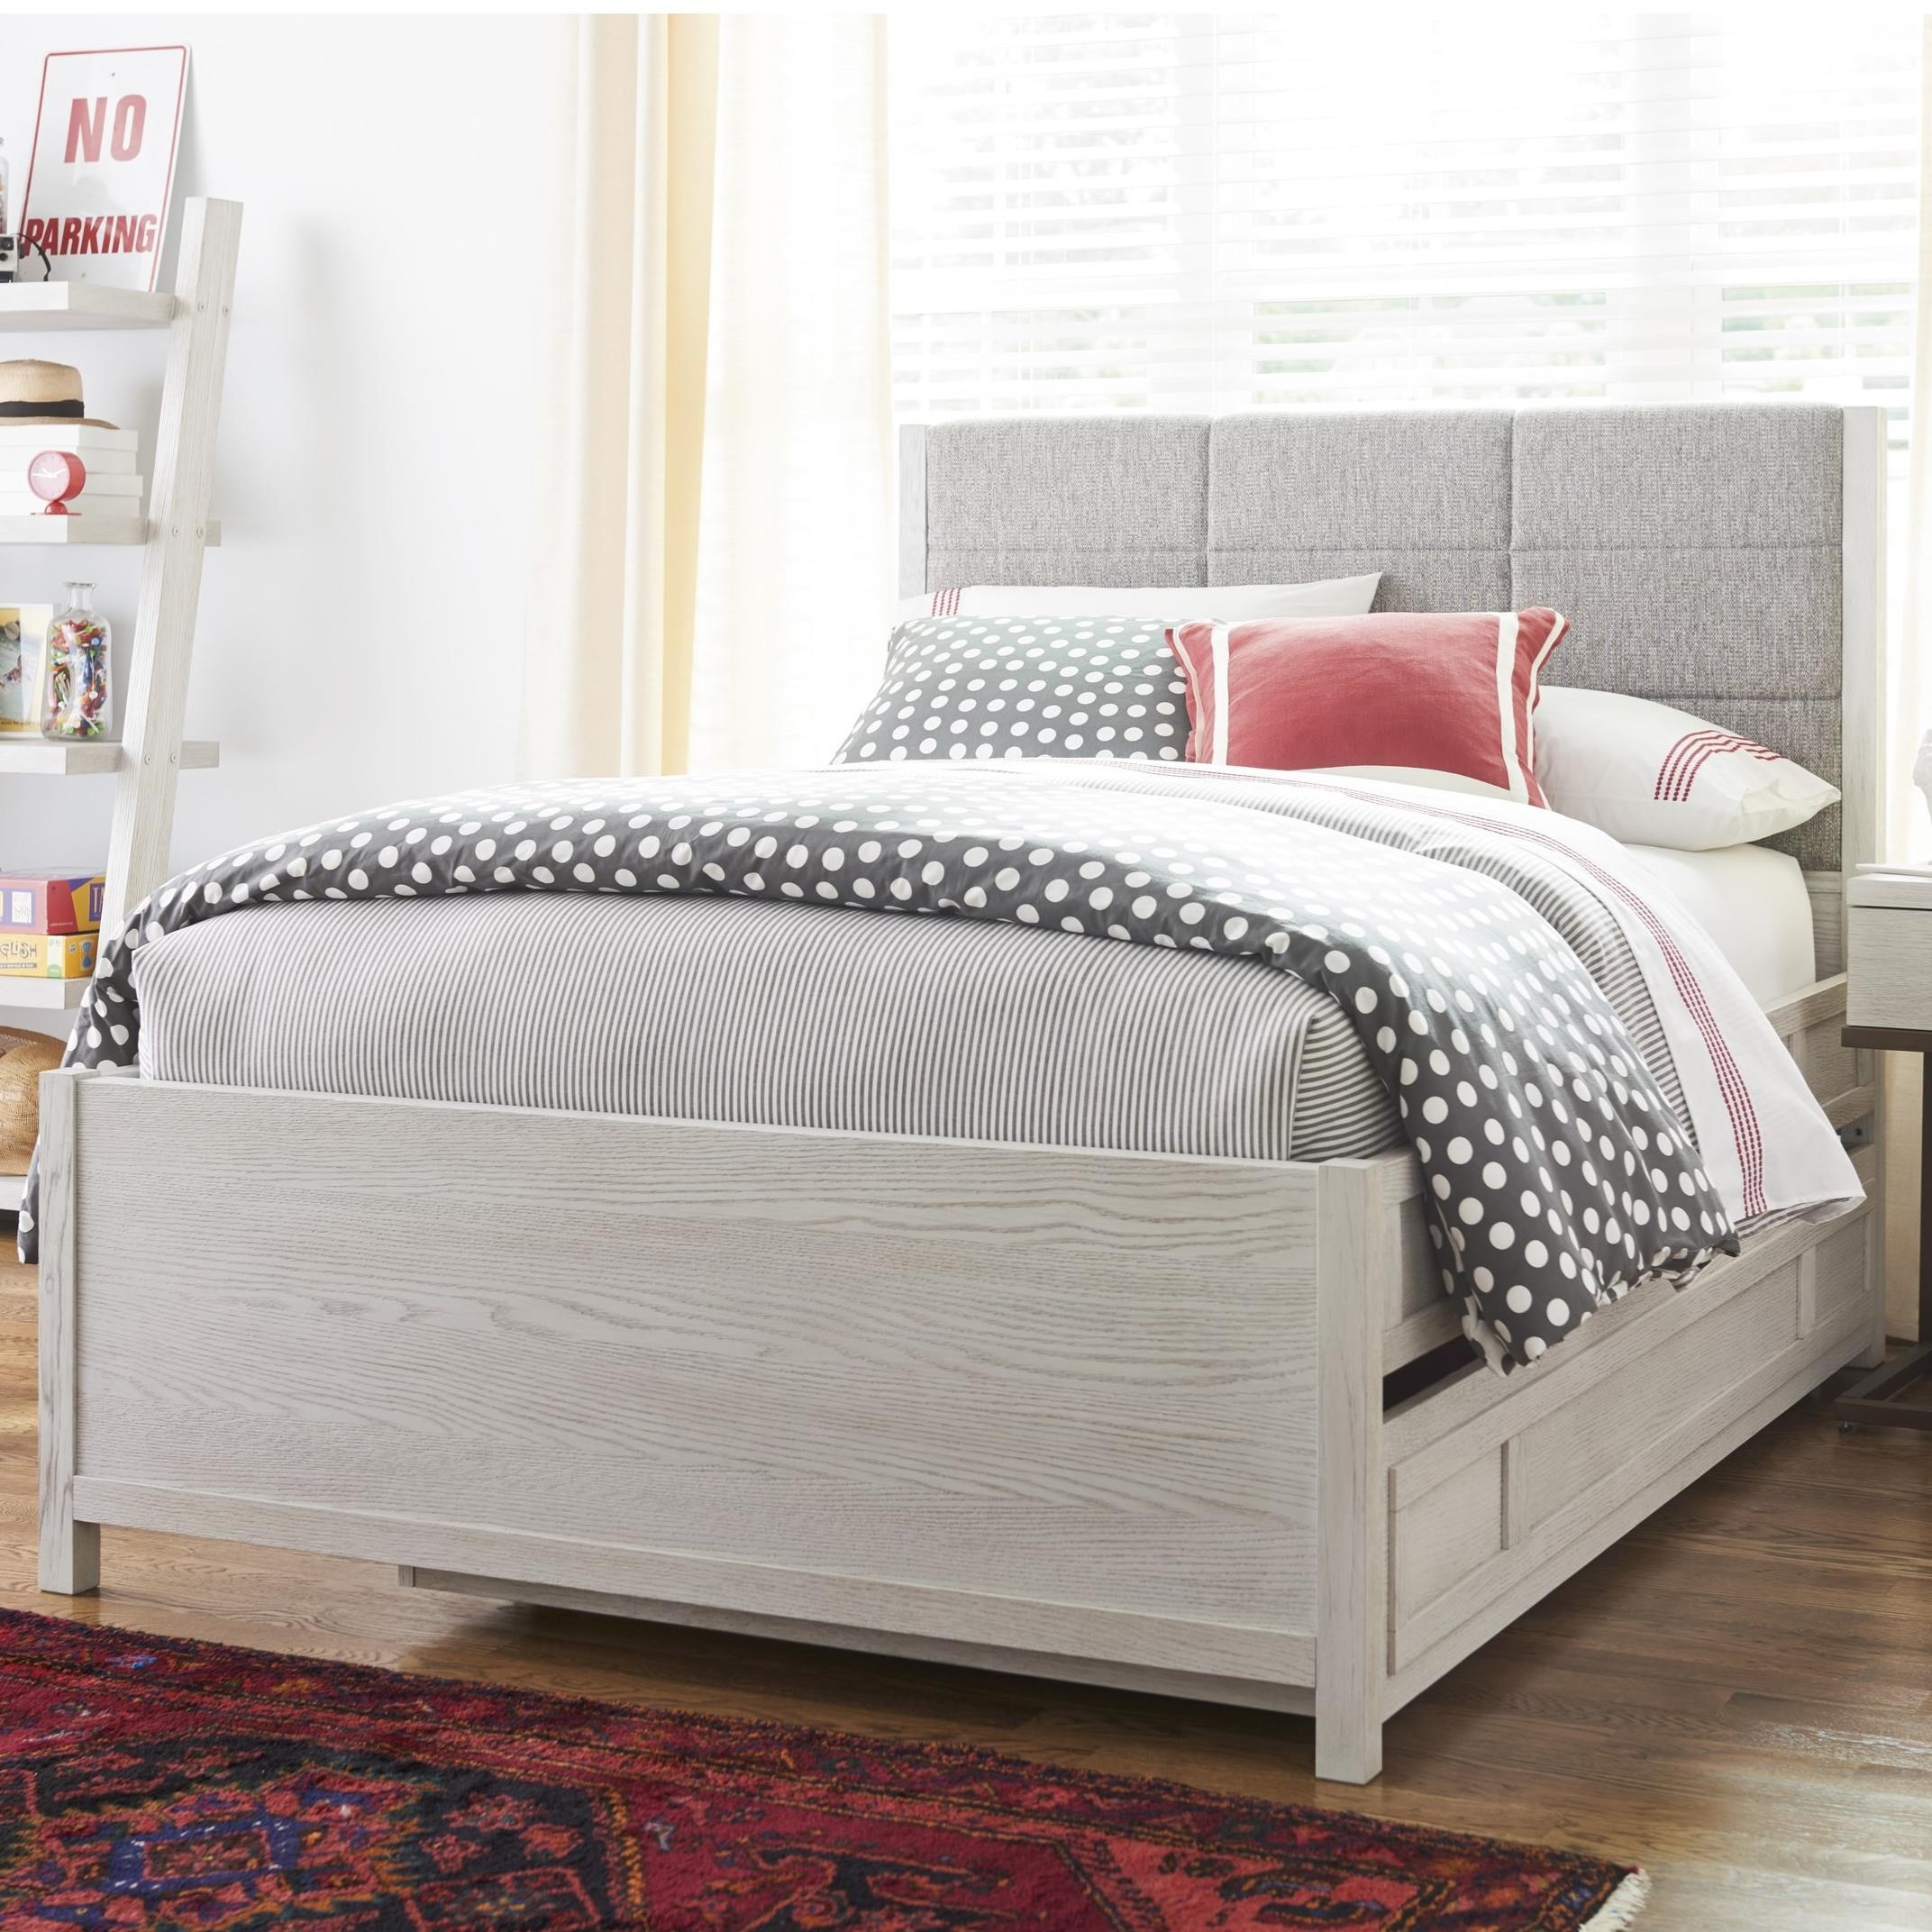 Twin Complete Upholstered Bed w/ Trundle